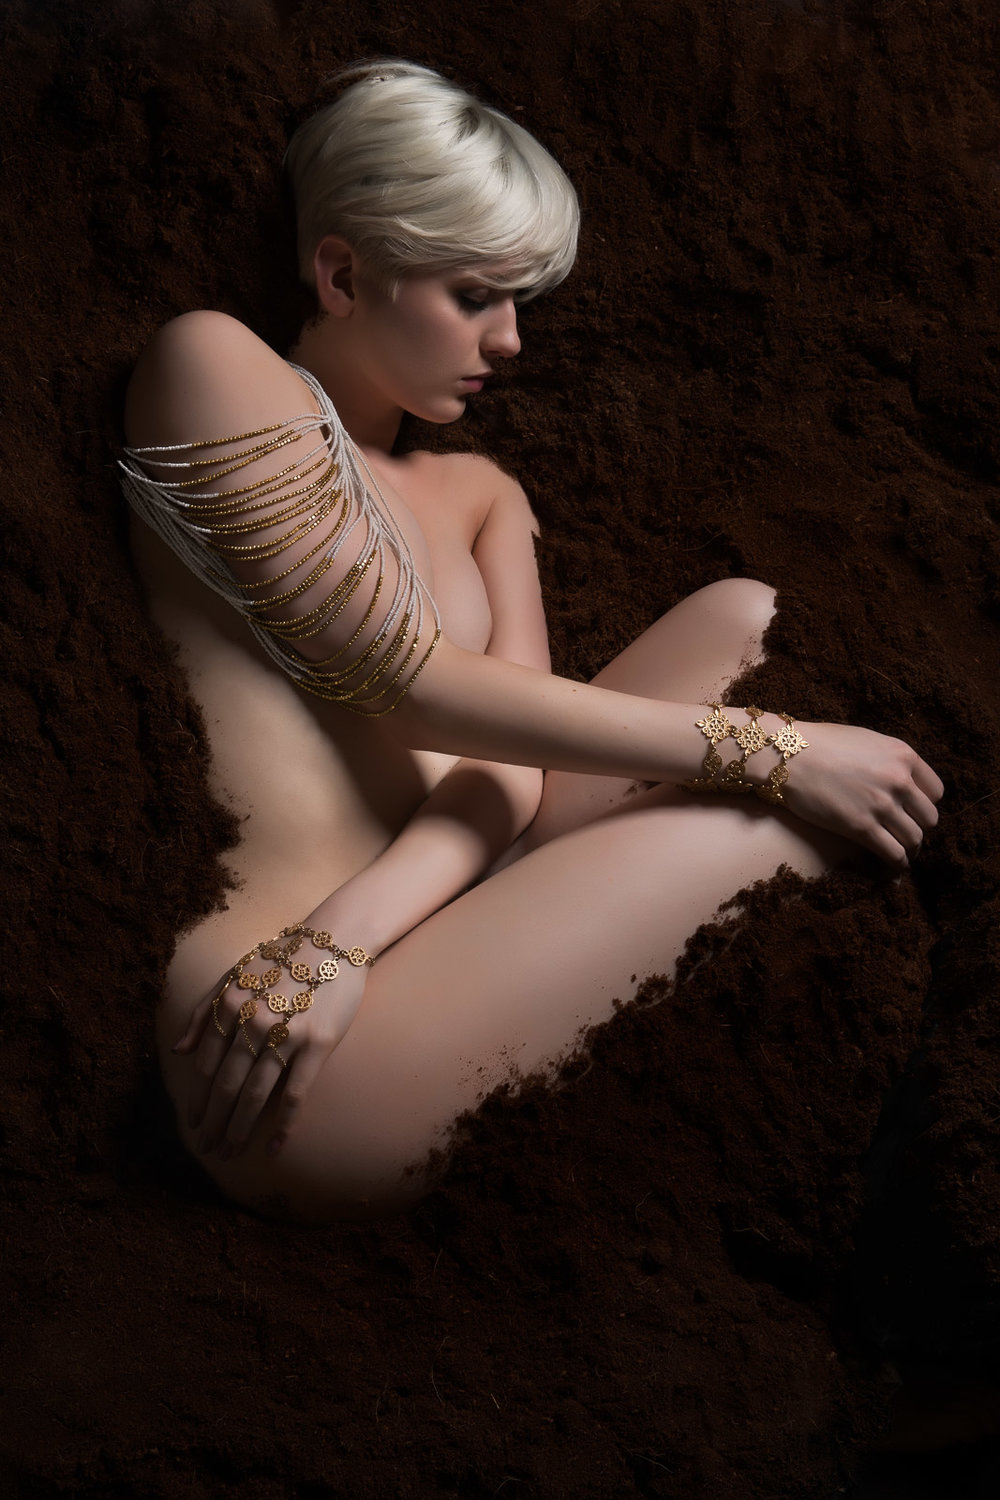 Kuoh Photography - Buried Treasure Beauty Concept - shoulder view